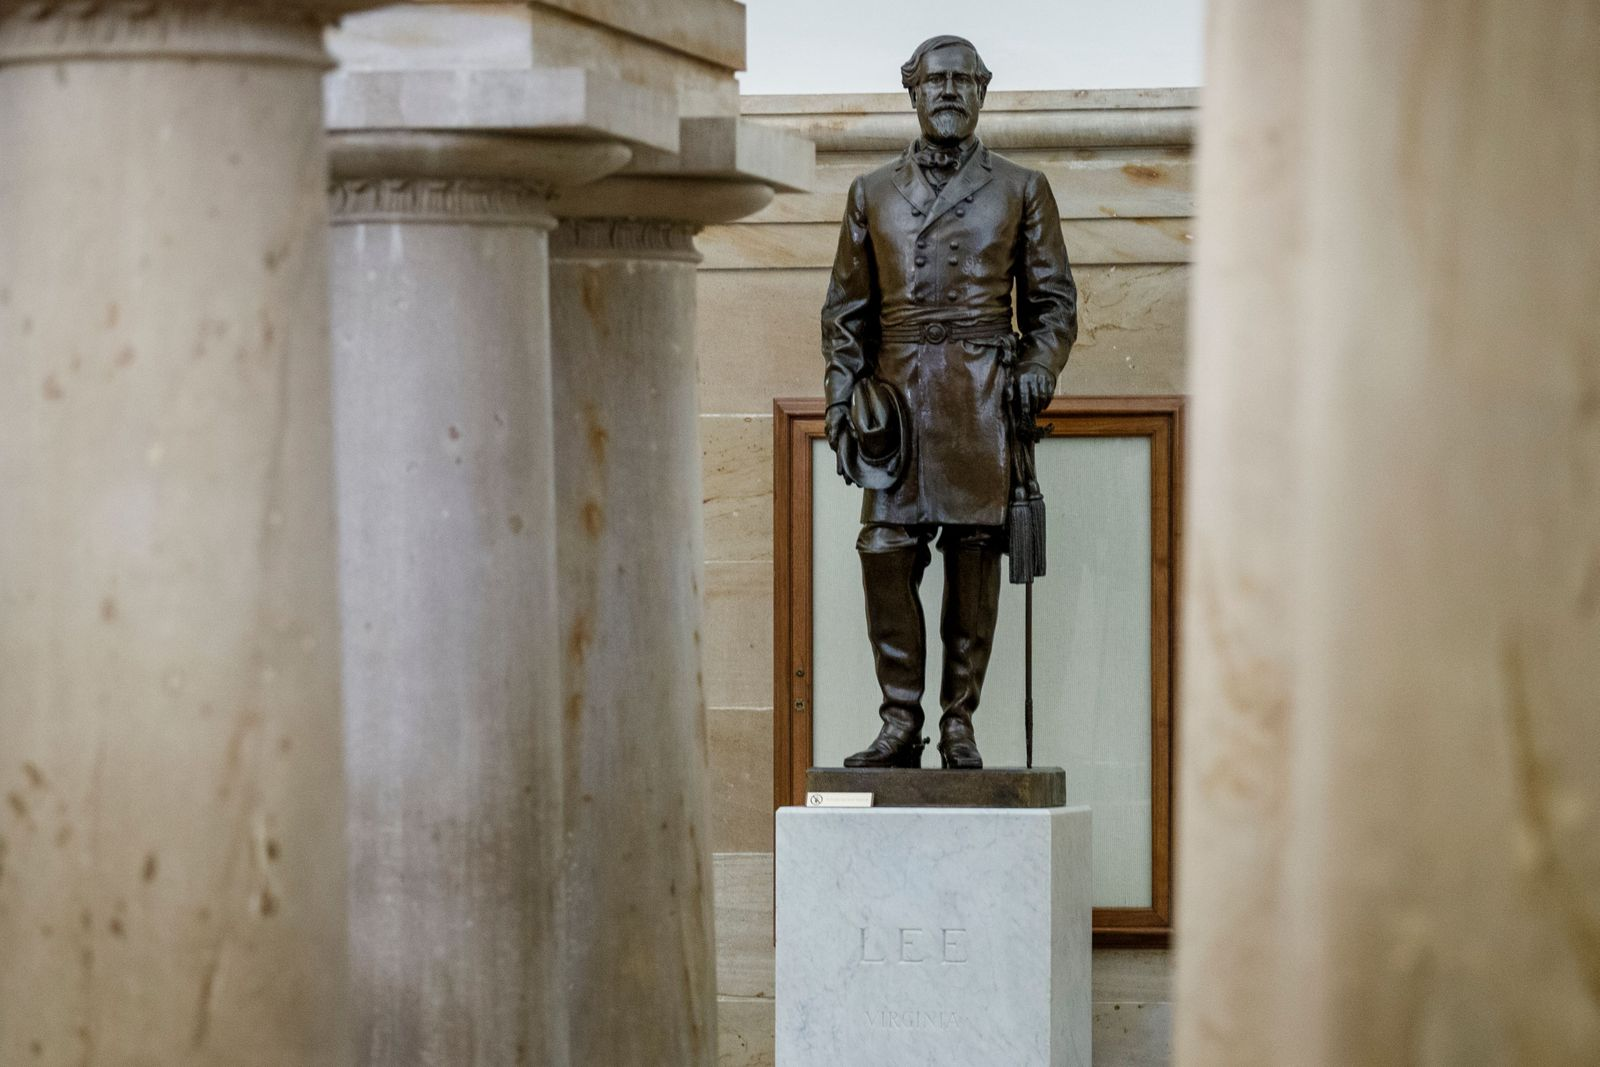 Statue of Confederate General Robert E. Lee on display in the US Capitol, Washington, USA - 07 Jul 2020